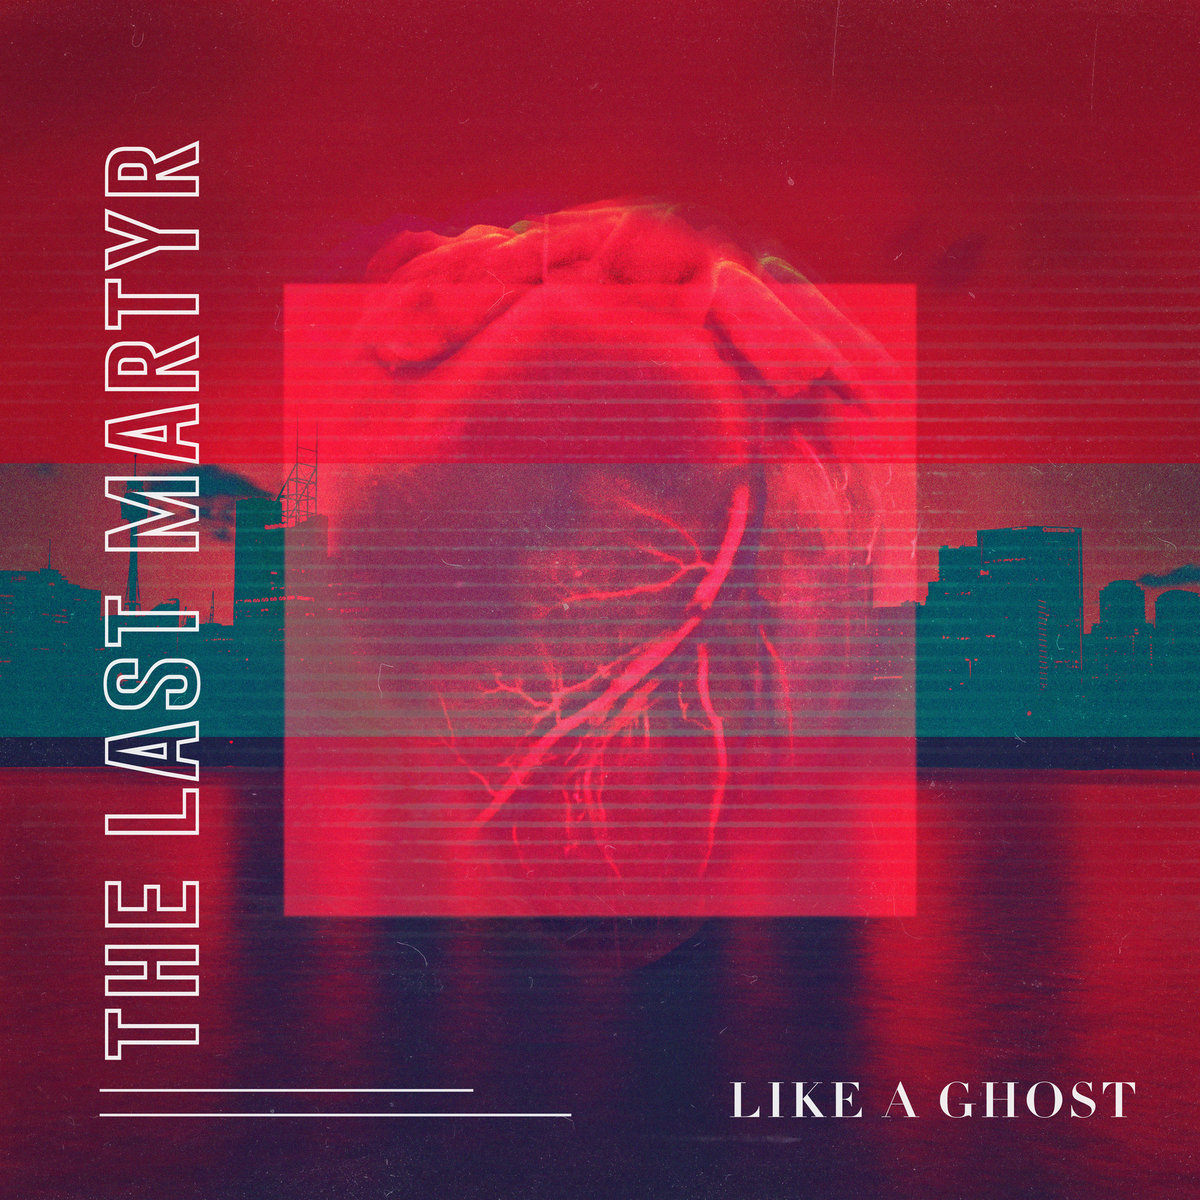 Like a Ghost by The Last Martyr